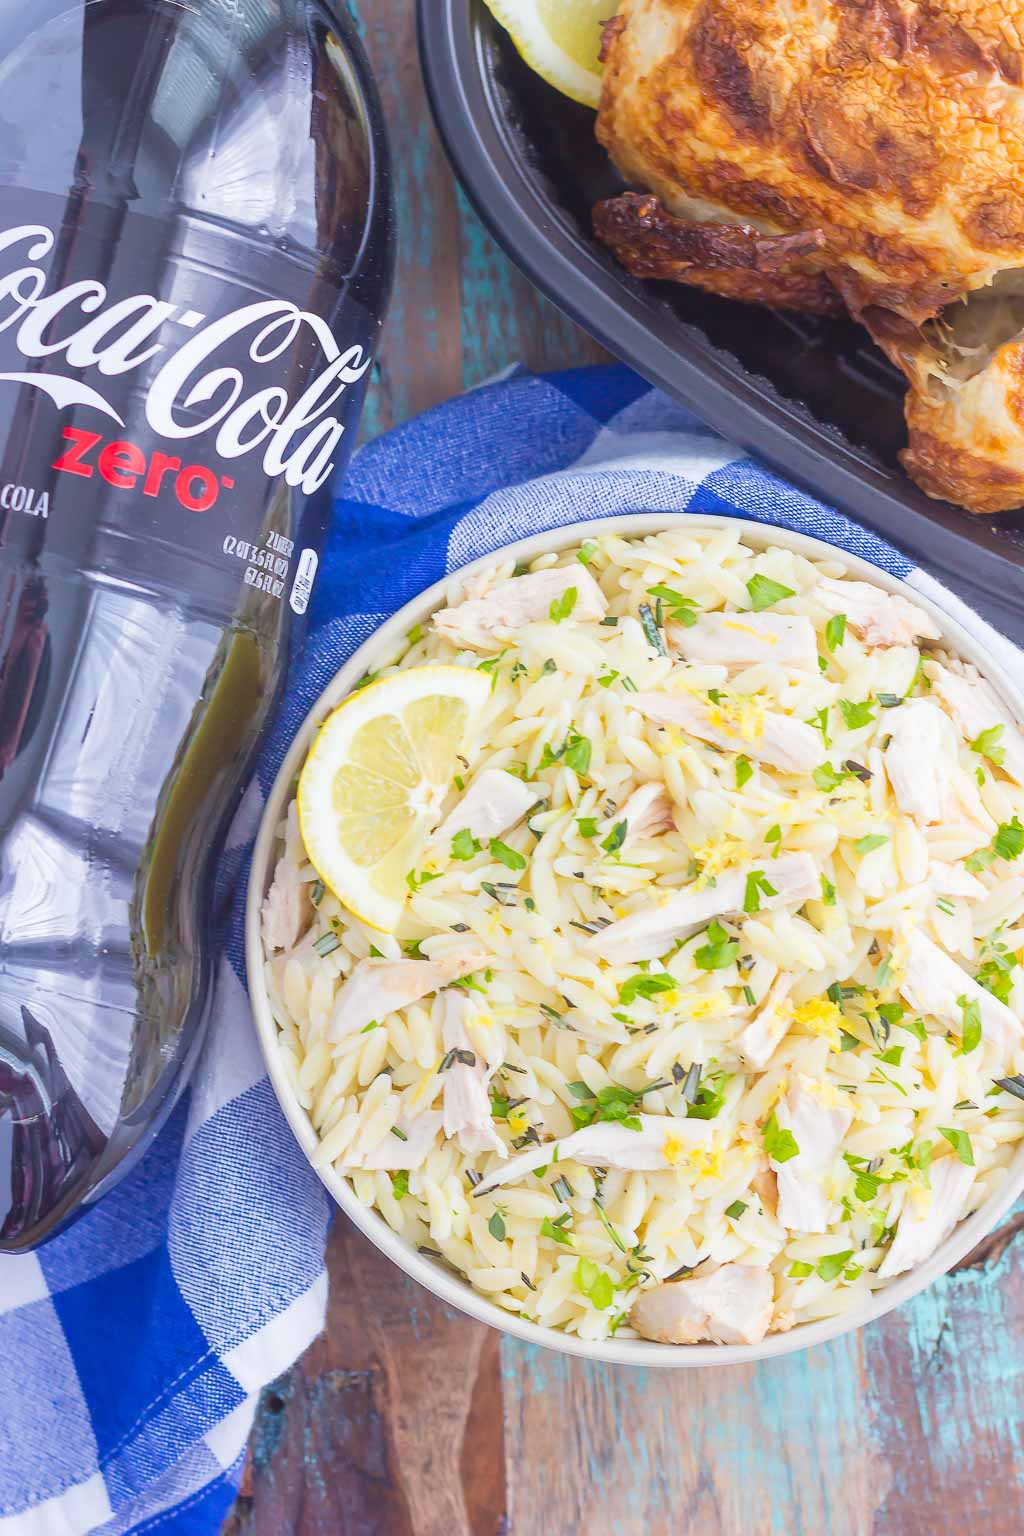 overhead shot of bowl of lemon orzo pasta salad next to bottle of coca cola and rotisserie chicken